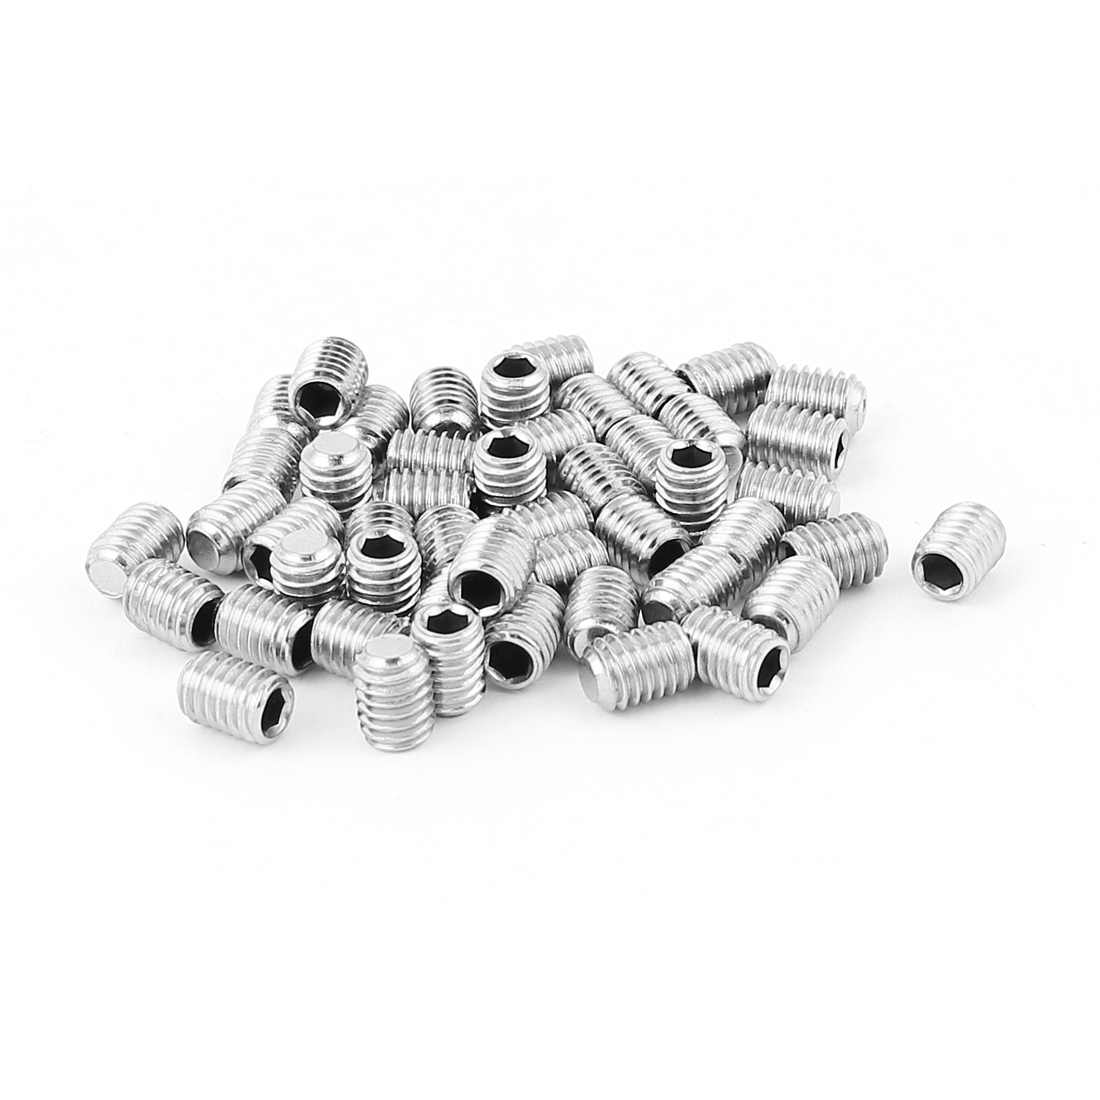 50pcs Stainless Steel M6 Thread Hexagonal Socket Set Screws Nuts Silver Tone